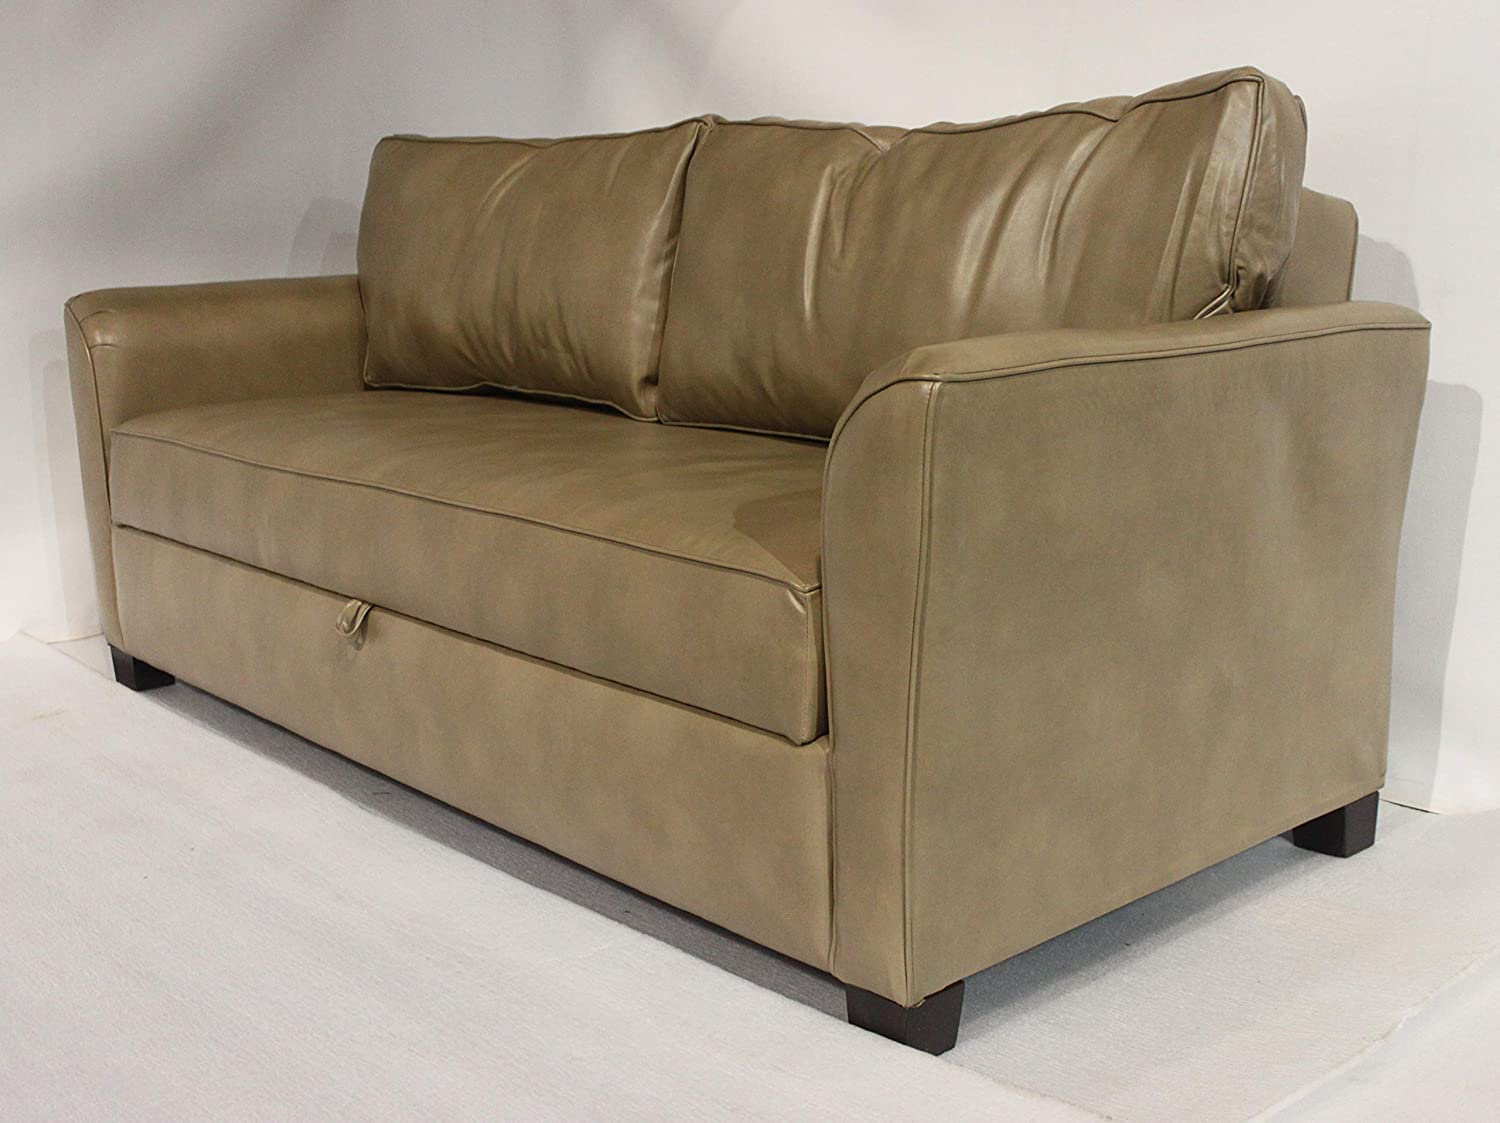 England Leather Sleeper Sofa Review Home Co